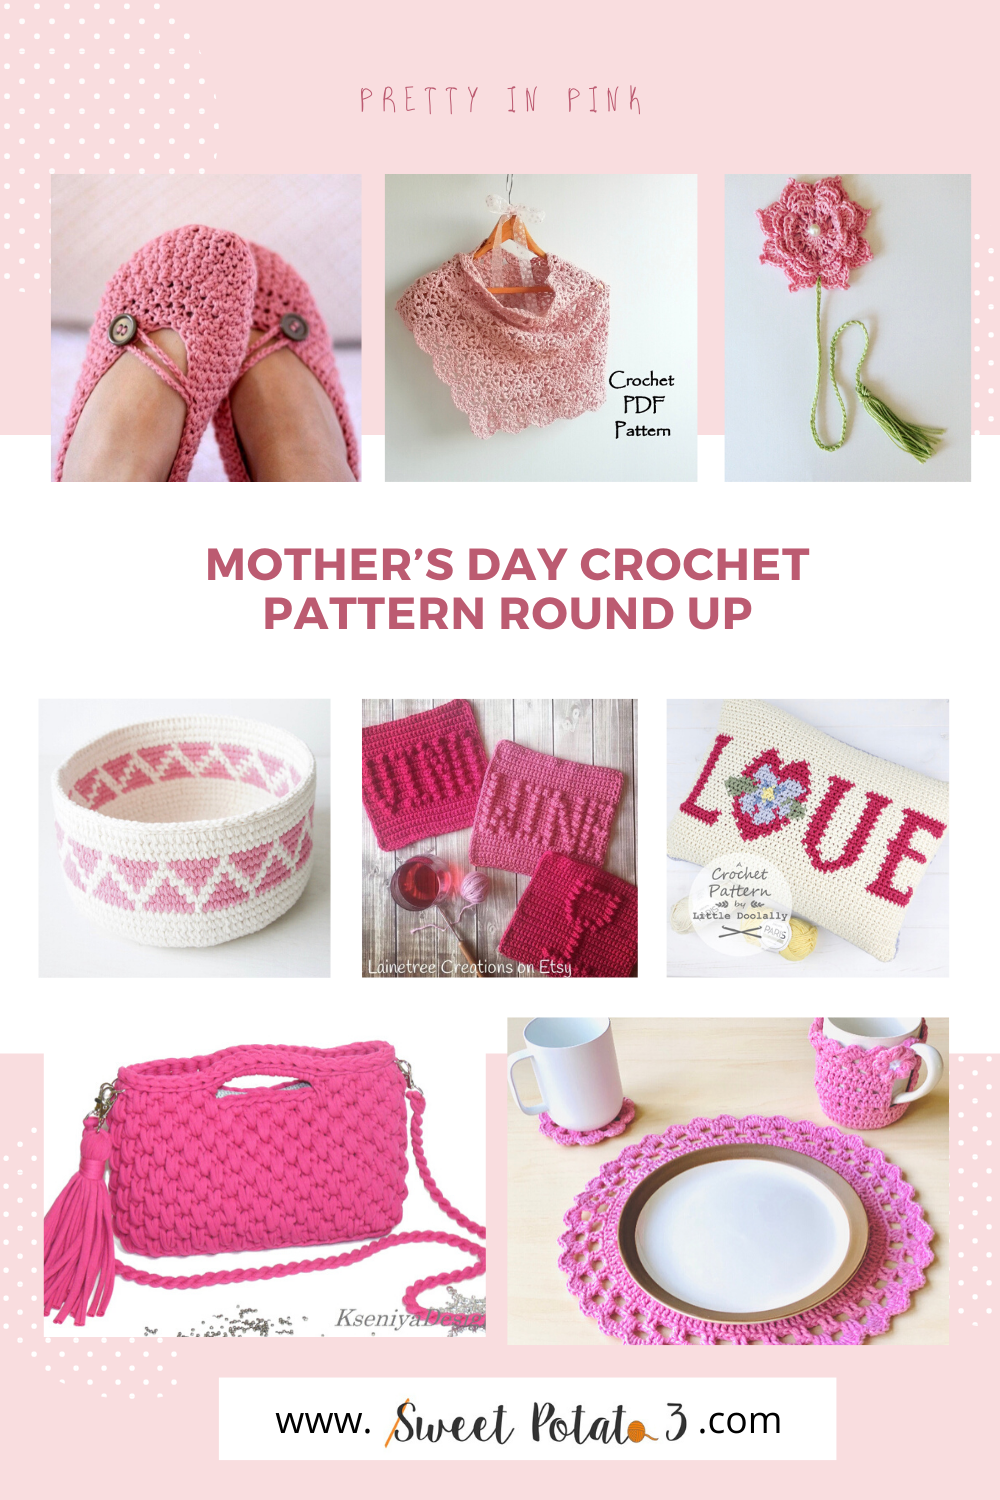 You are currently viewing Mother's Day Pretty in Pink Crochet Pattern Round Up